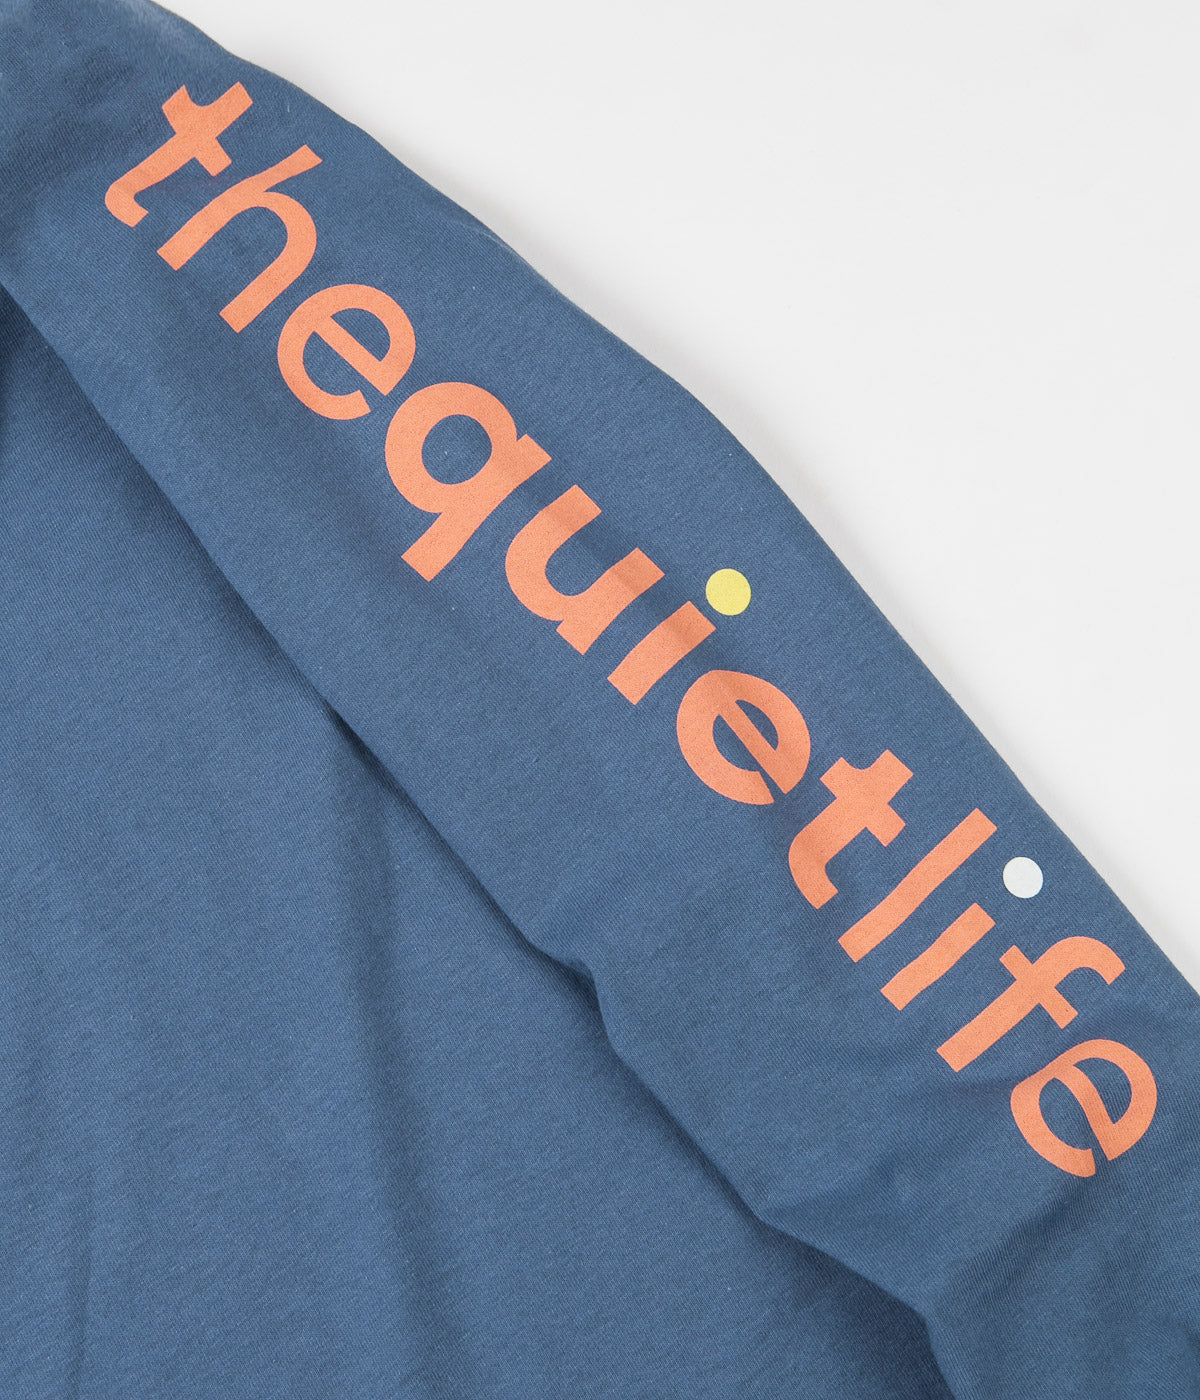 The Quiet Life Origin Repeat Long Sleeve T-Shirt - Slate